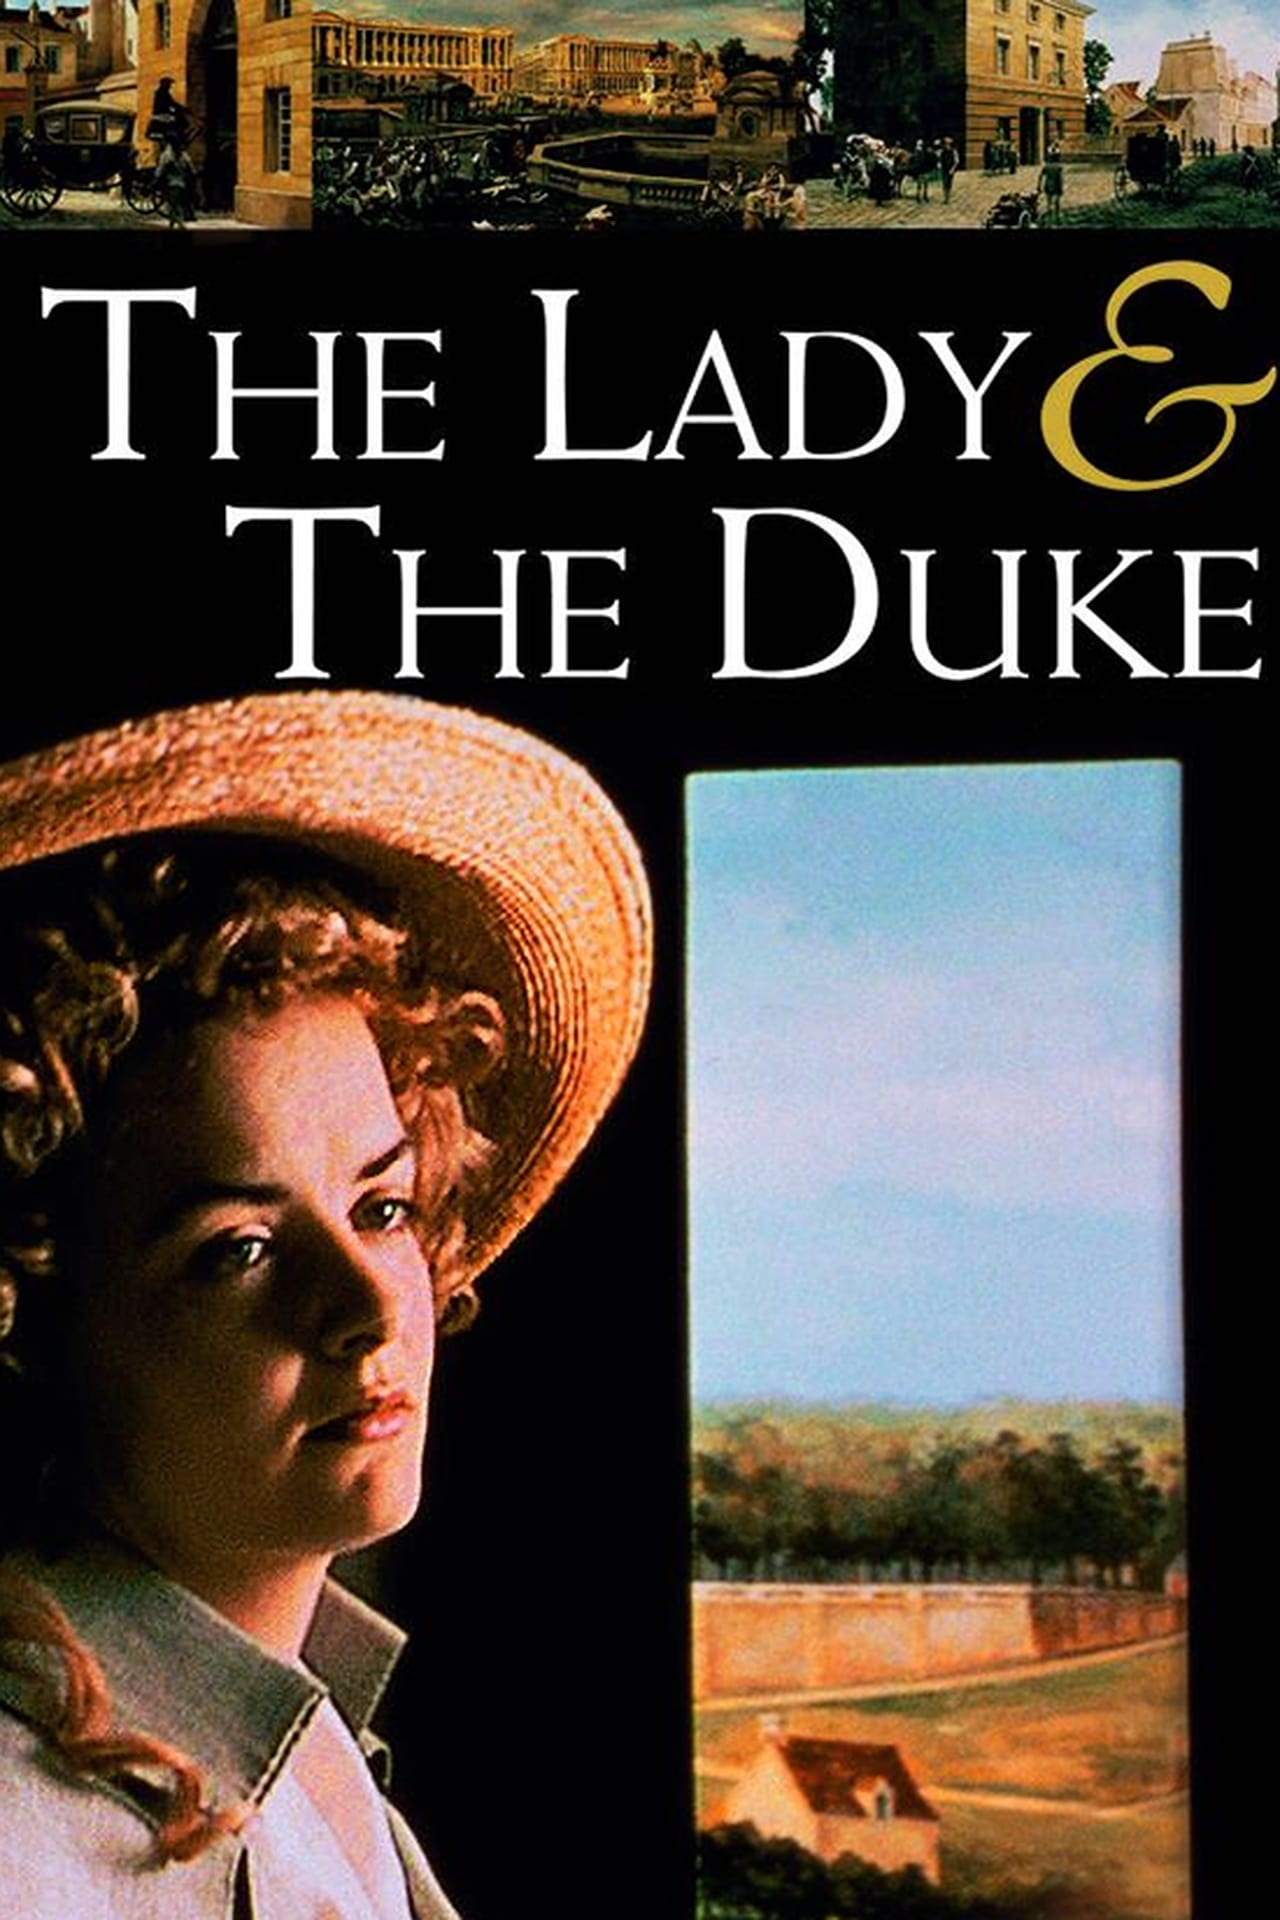 The Lady and the Duke